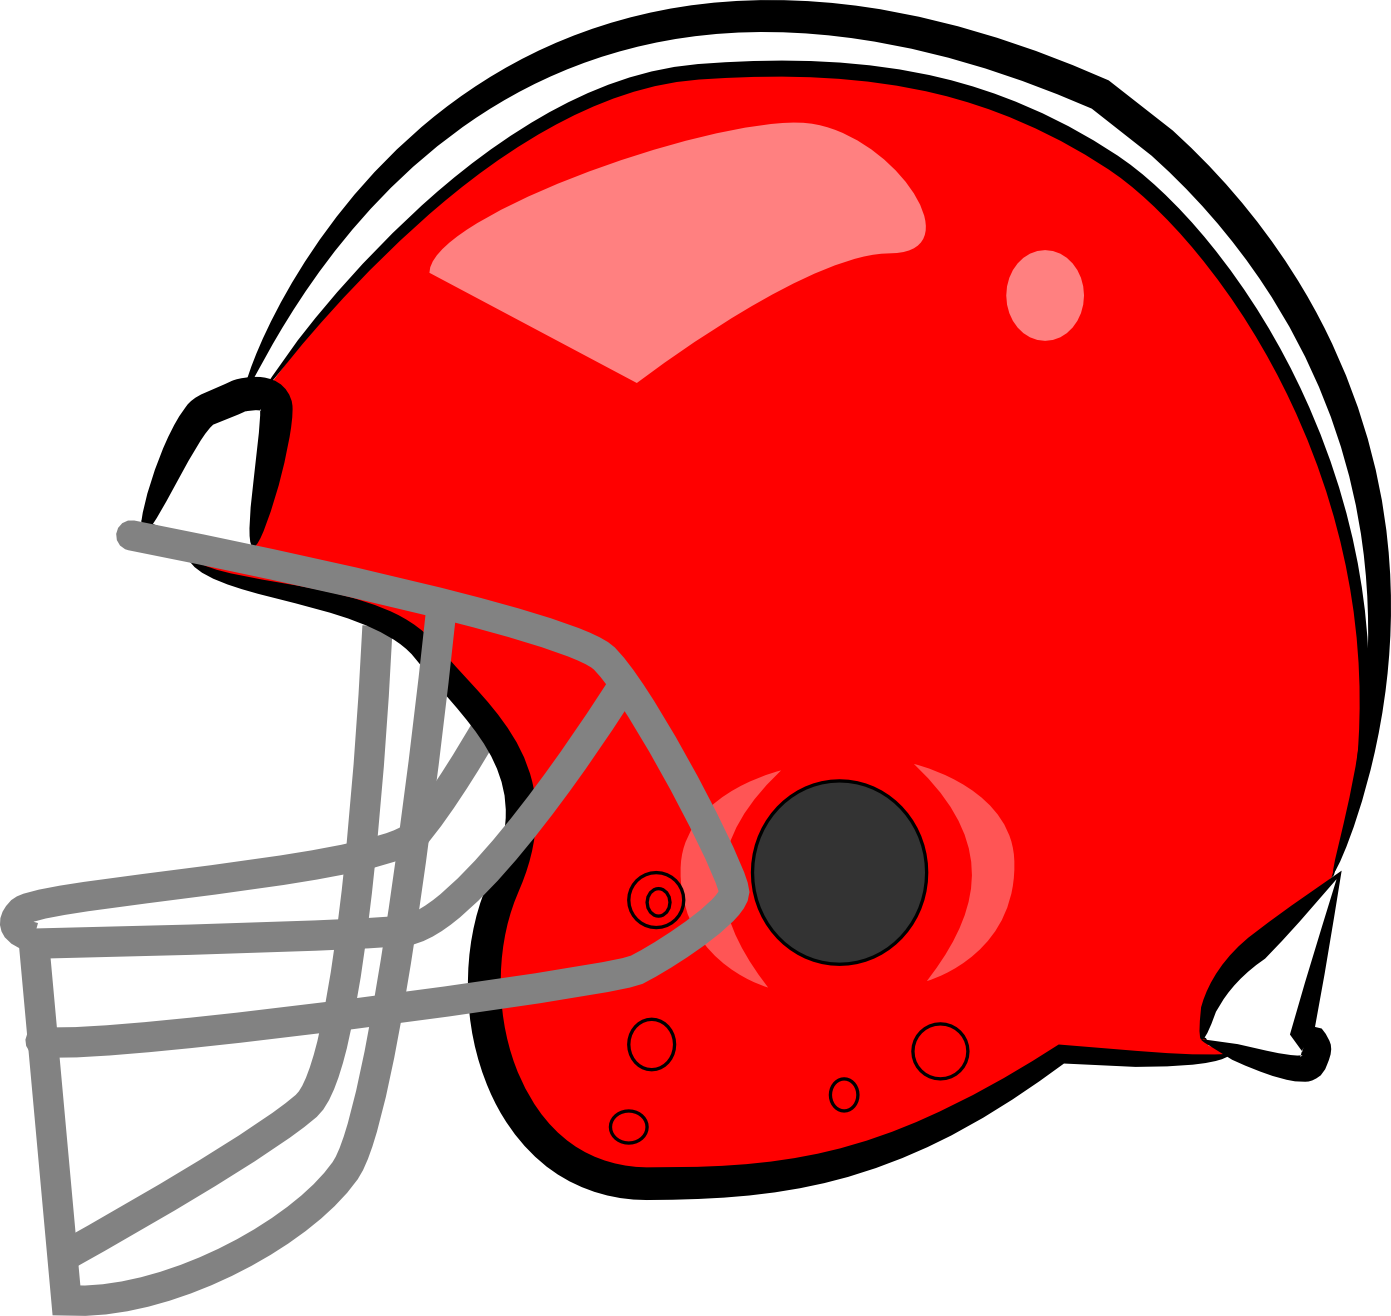 American football jersey clipart clipart black and white stock Alabama Football Clipart at GetDrawings.com | Free for personal use ... clipart black and white stock